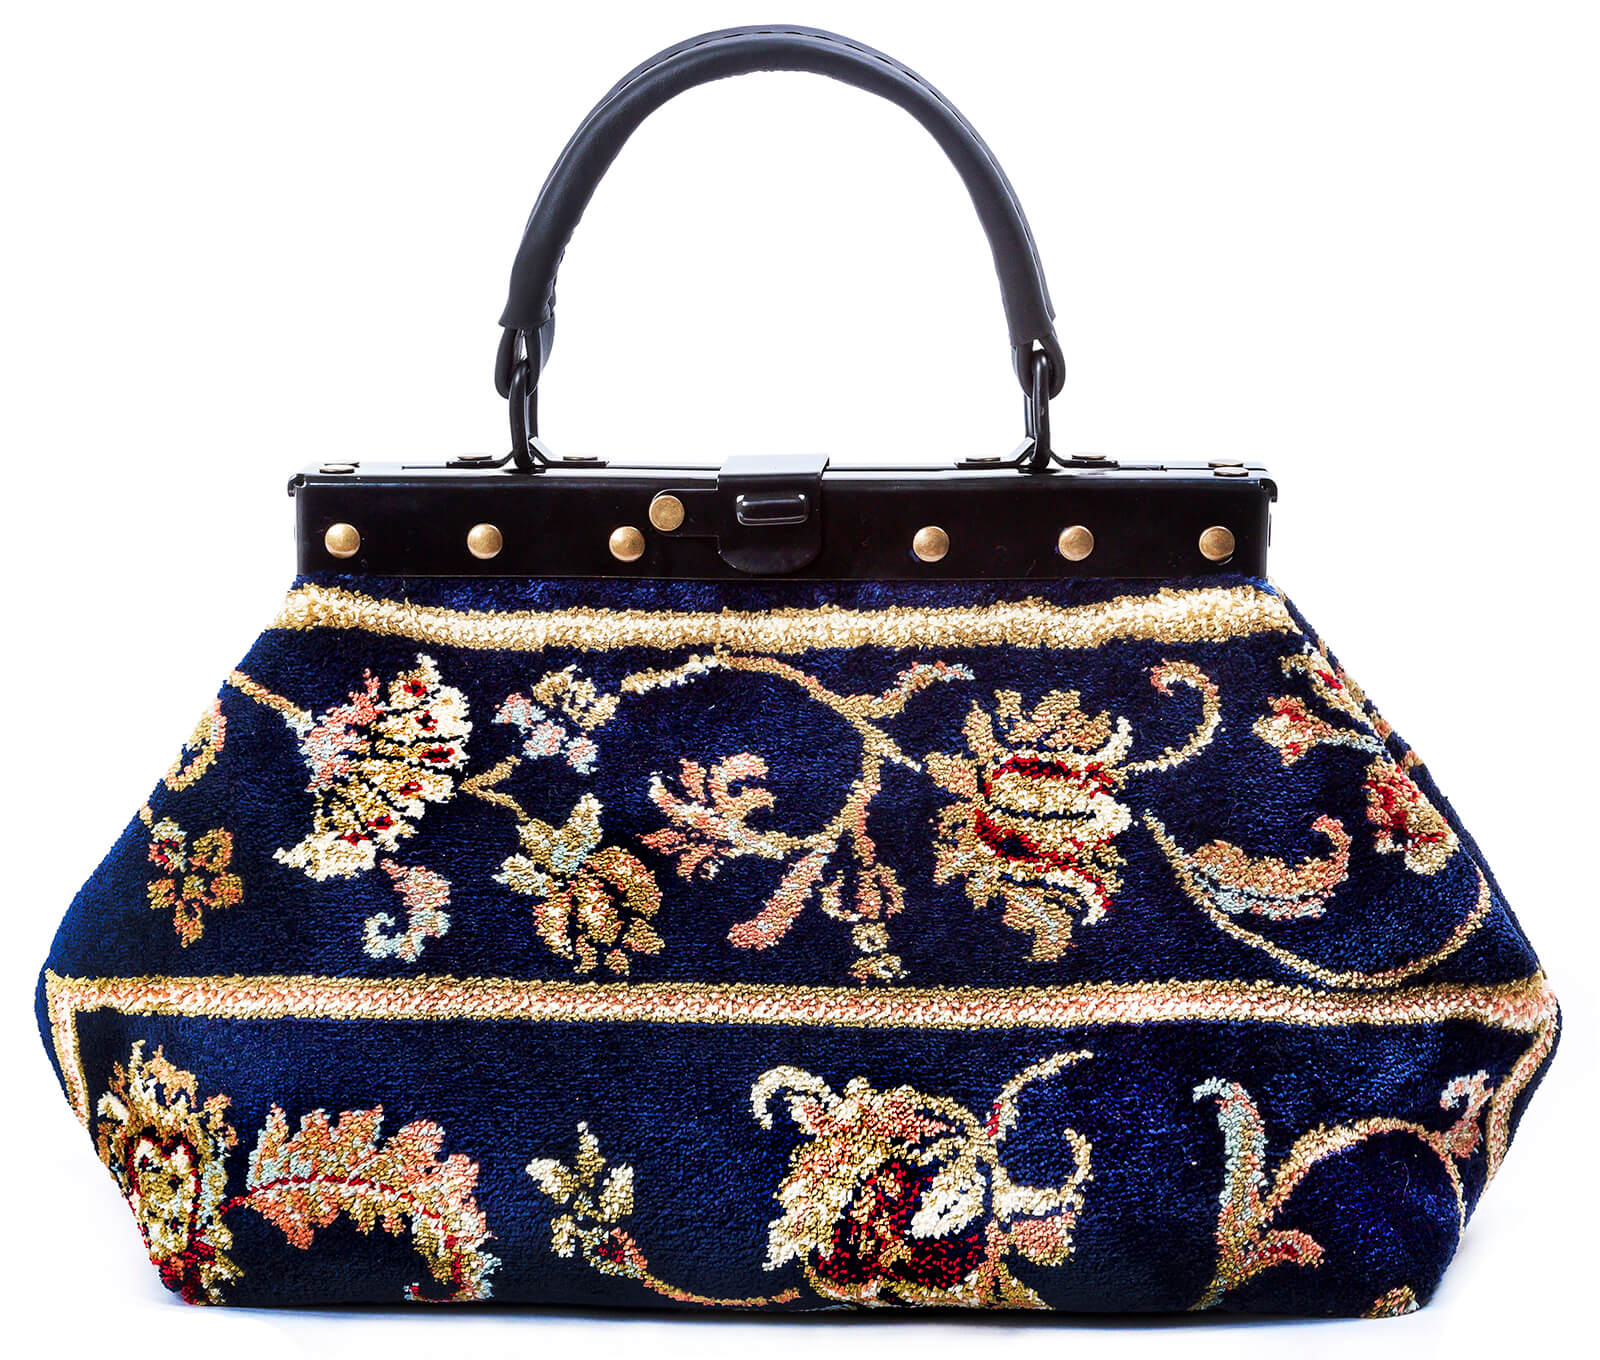 Image of EXQUISITE Pergola Navy Victorian Carpet Bag.